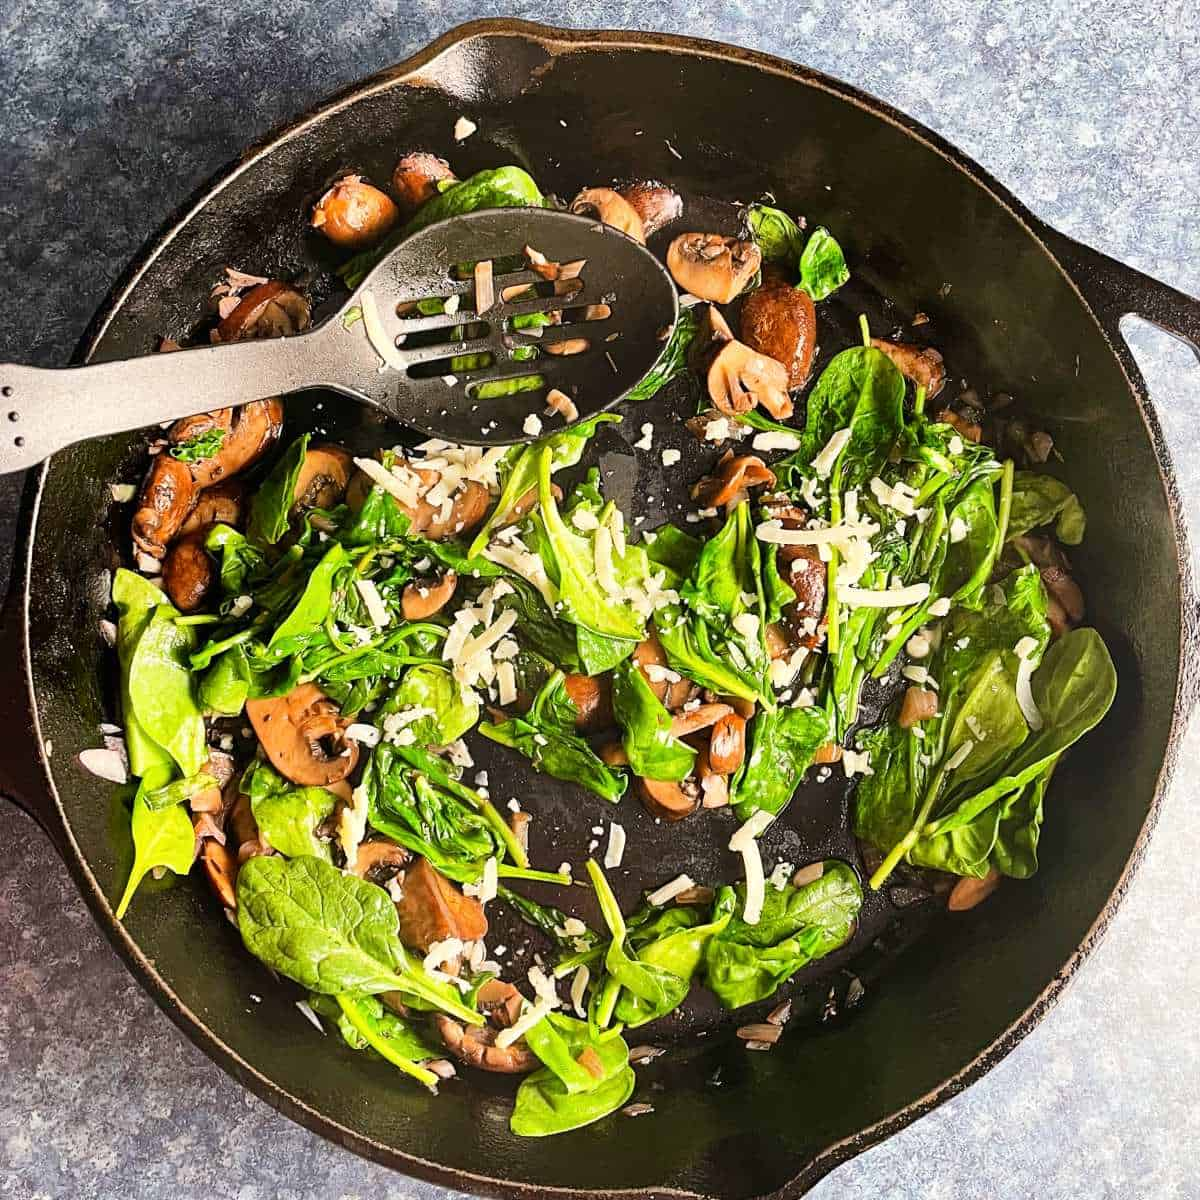 sauteed spinach and mushrooms in a large black skillet.